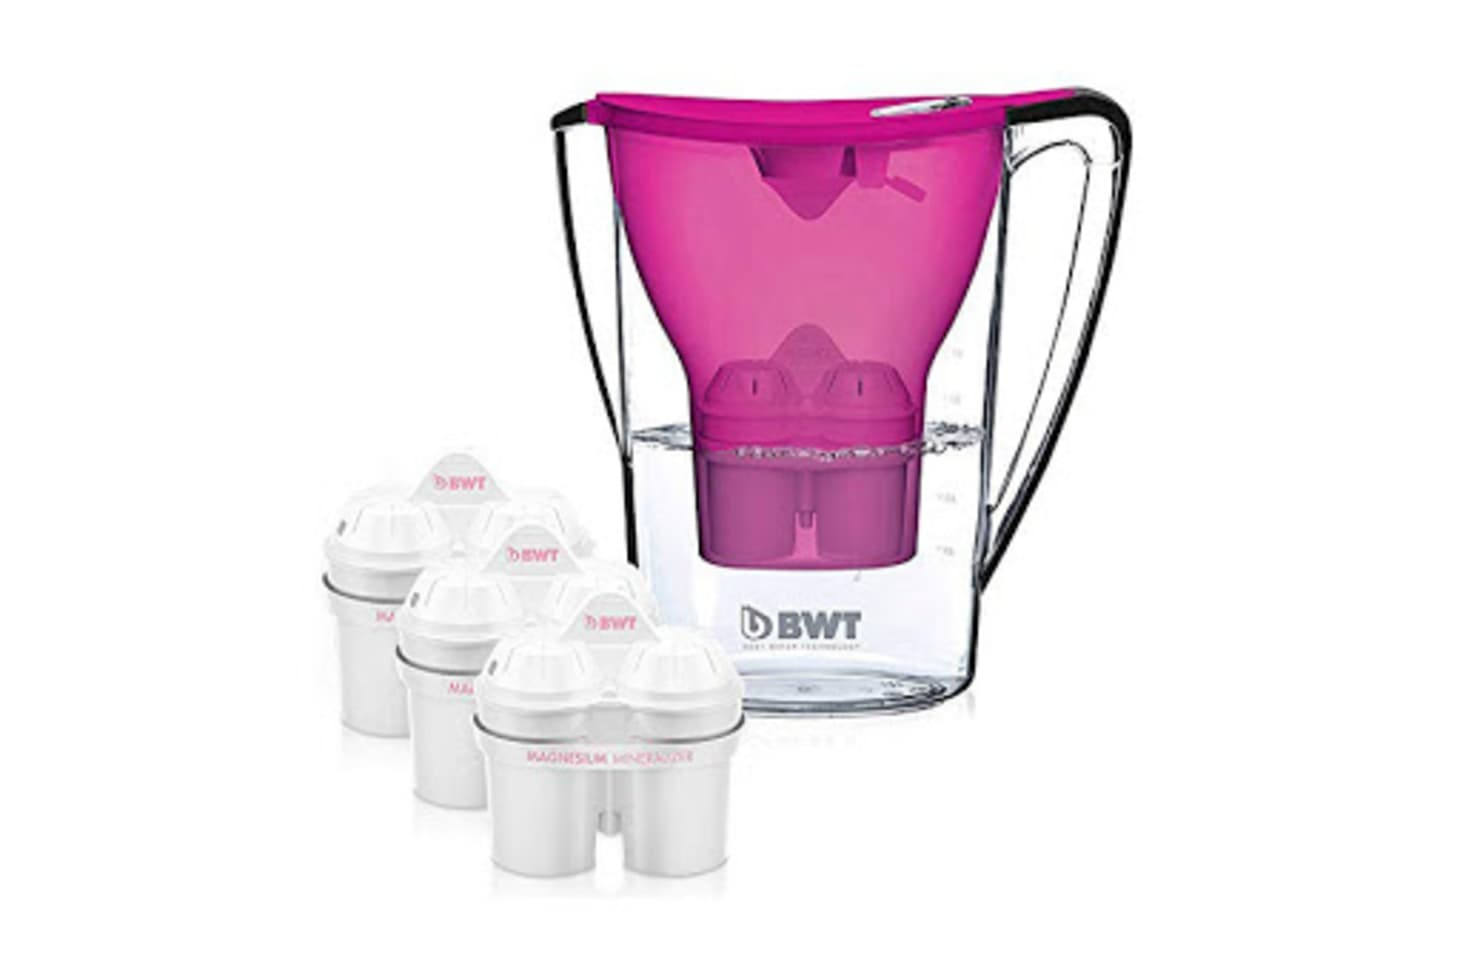 Best Water Filter Pitcher - 2018 Top Rated Reviews | Apartment Therapy